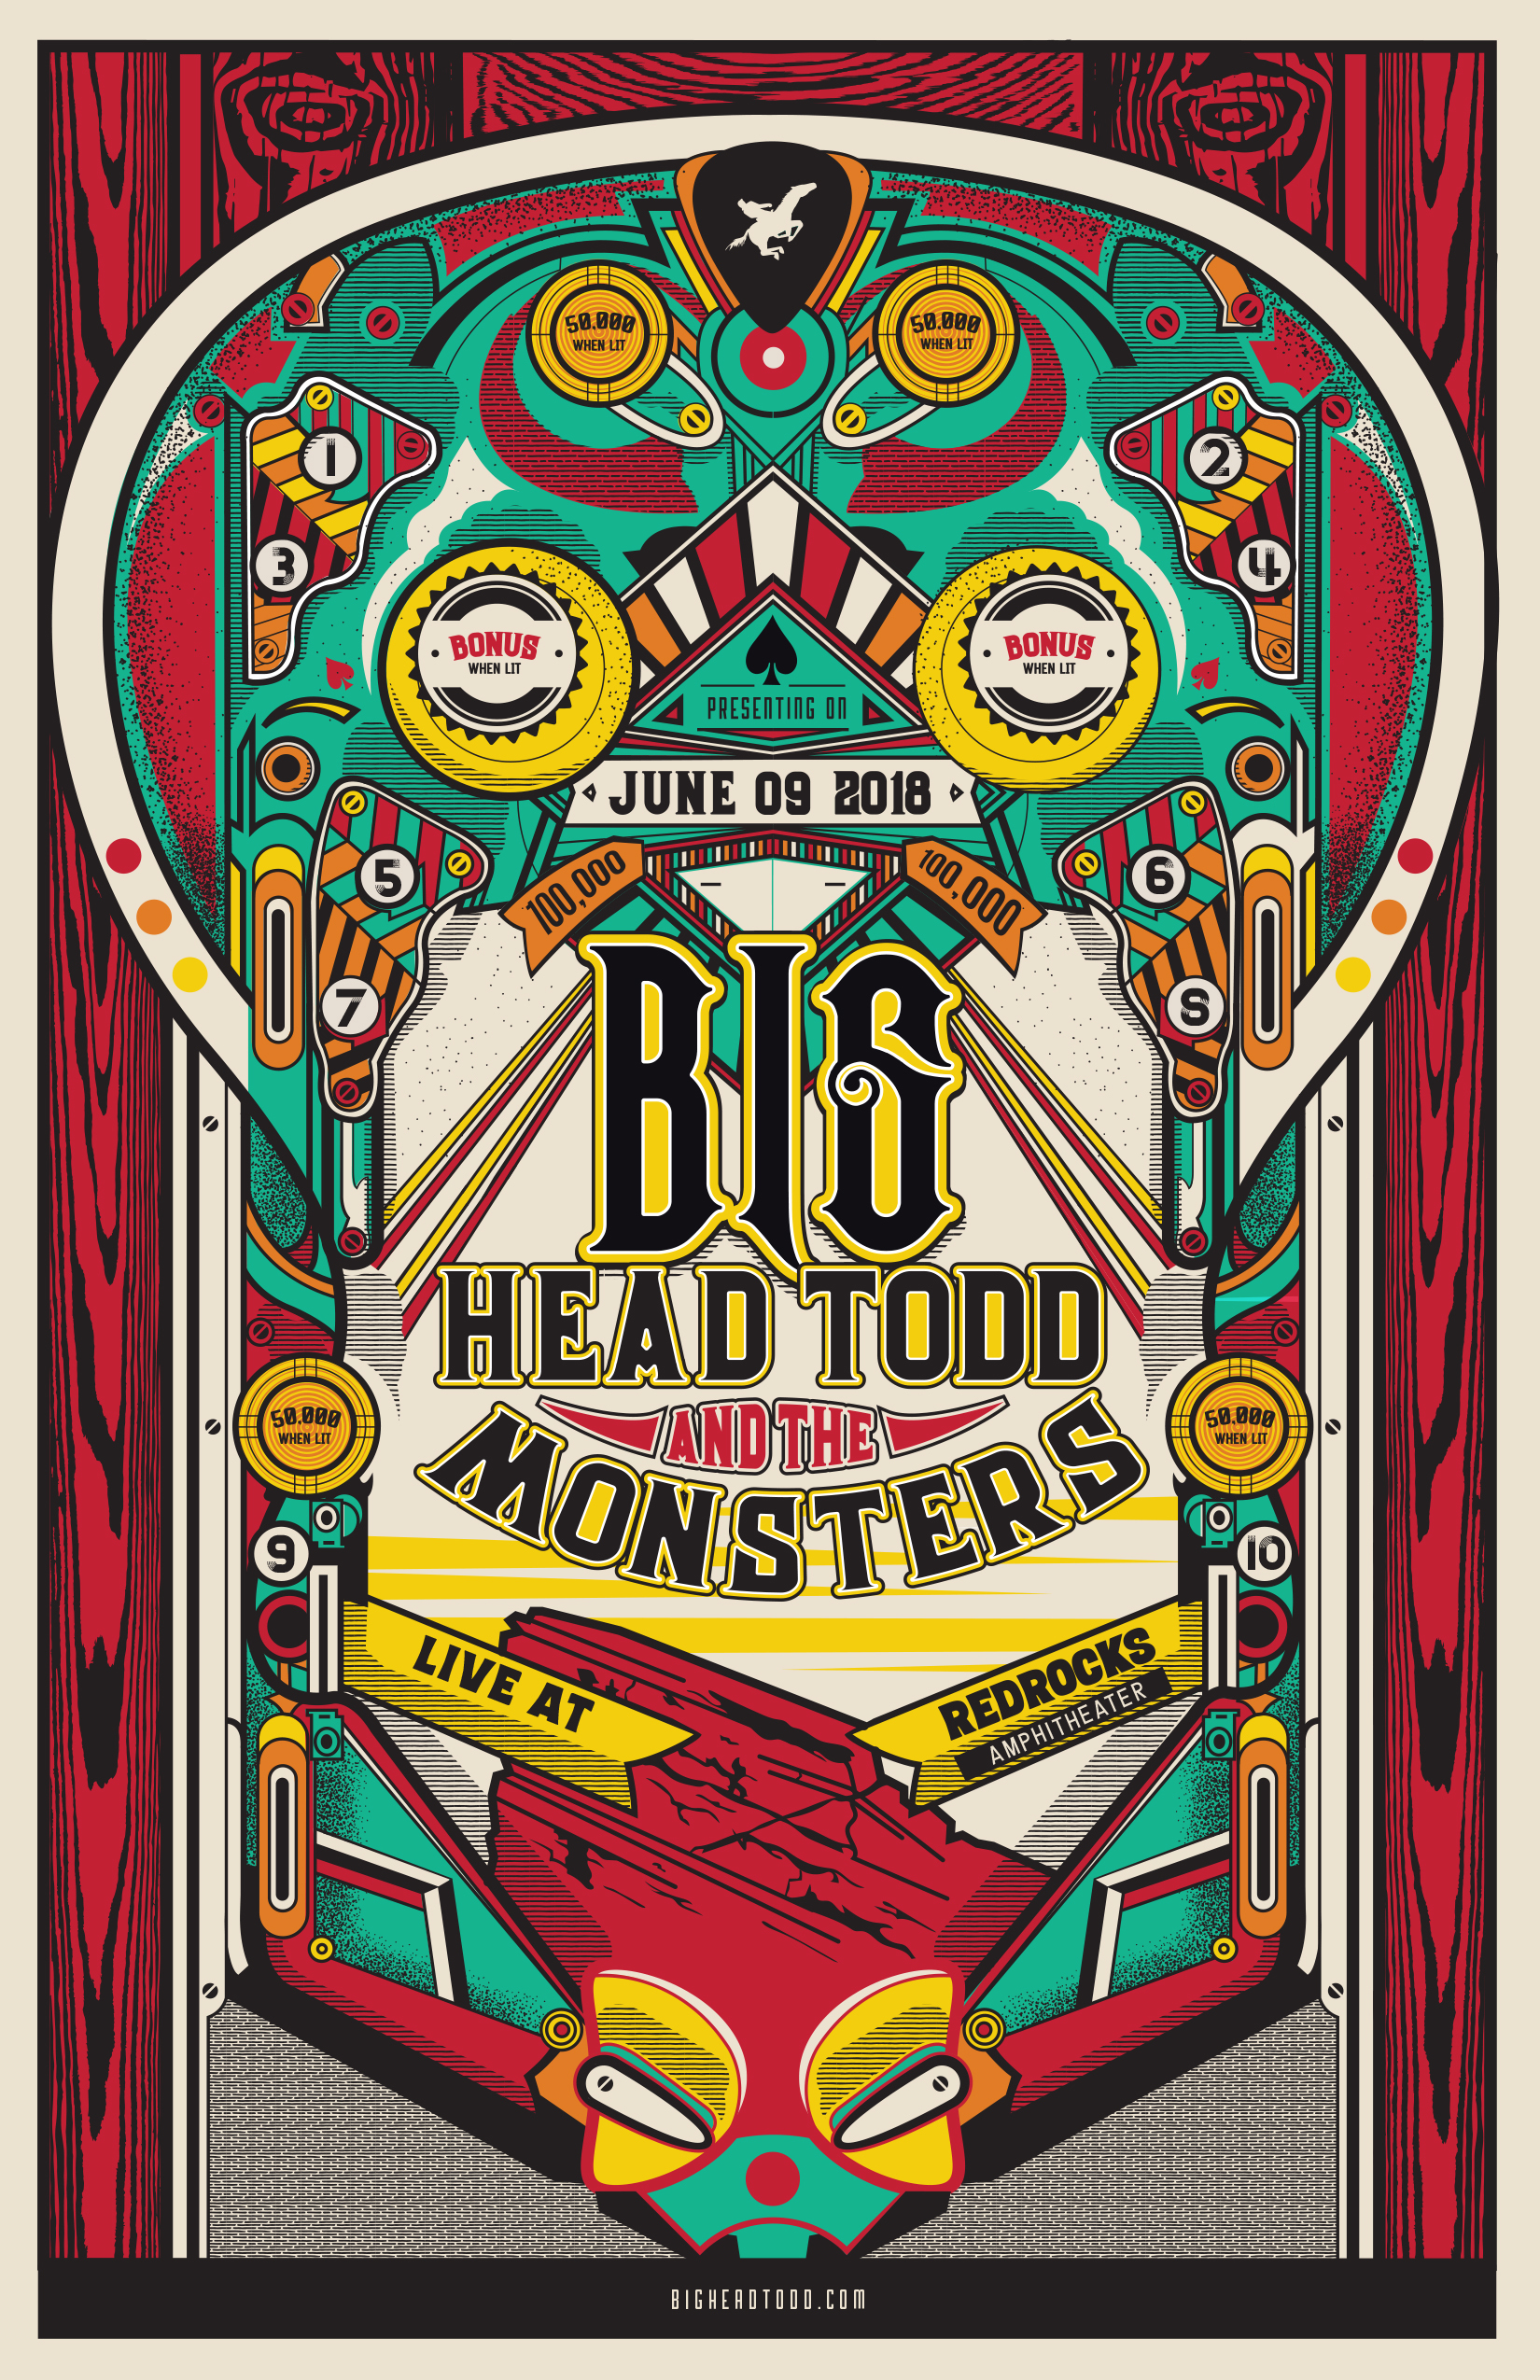 SUMMER ANNOUNCEMENT : Big Head Todd returns to Red Rocks on June 9th! Pre-Sale tickets available TOMORROW 1/22!